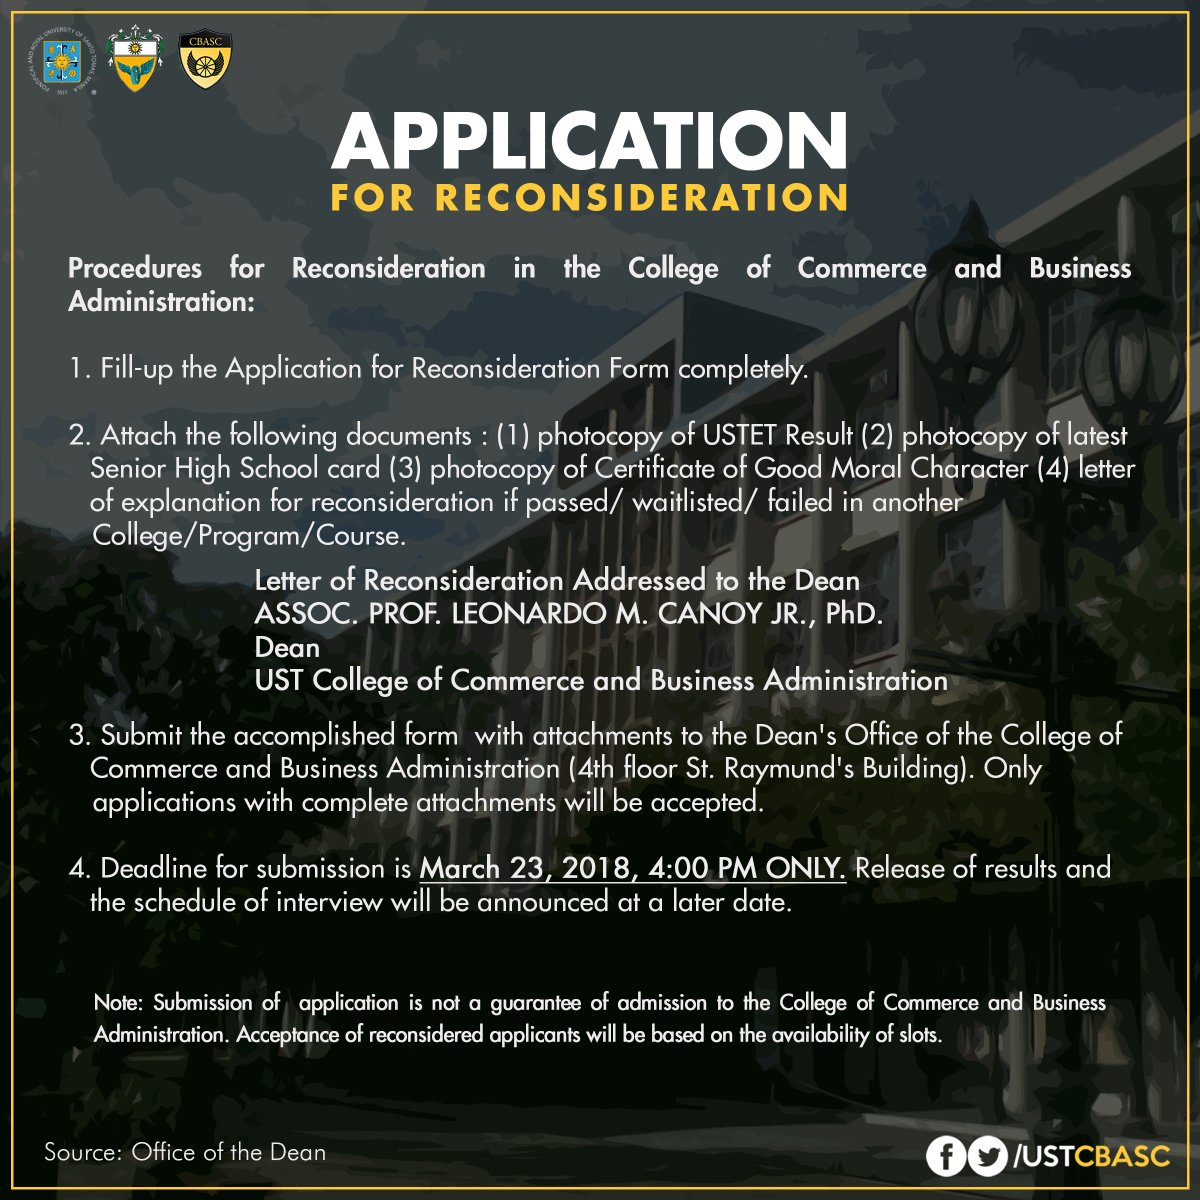 ust cbasc on twitter re application for reconsideration